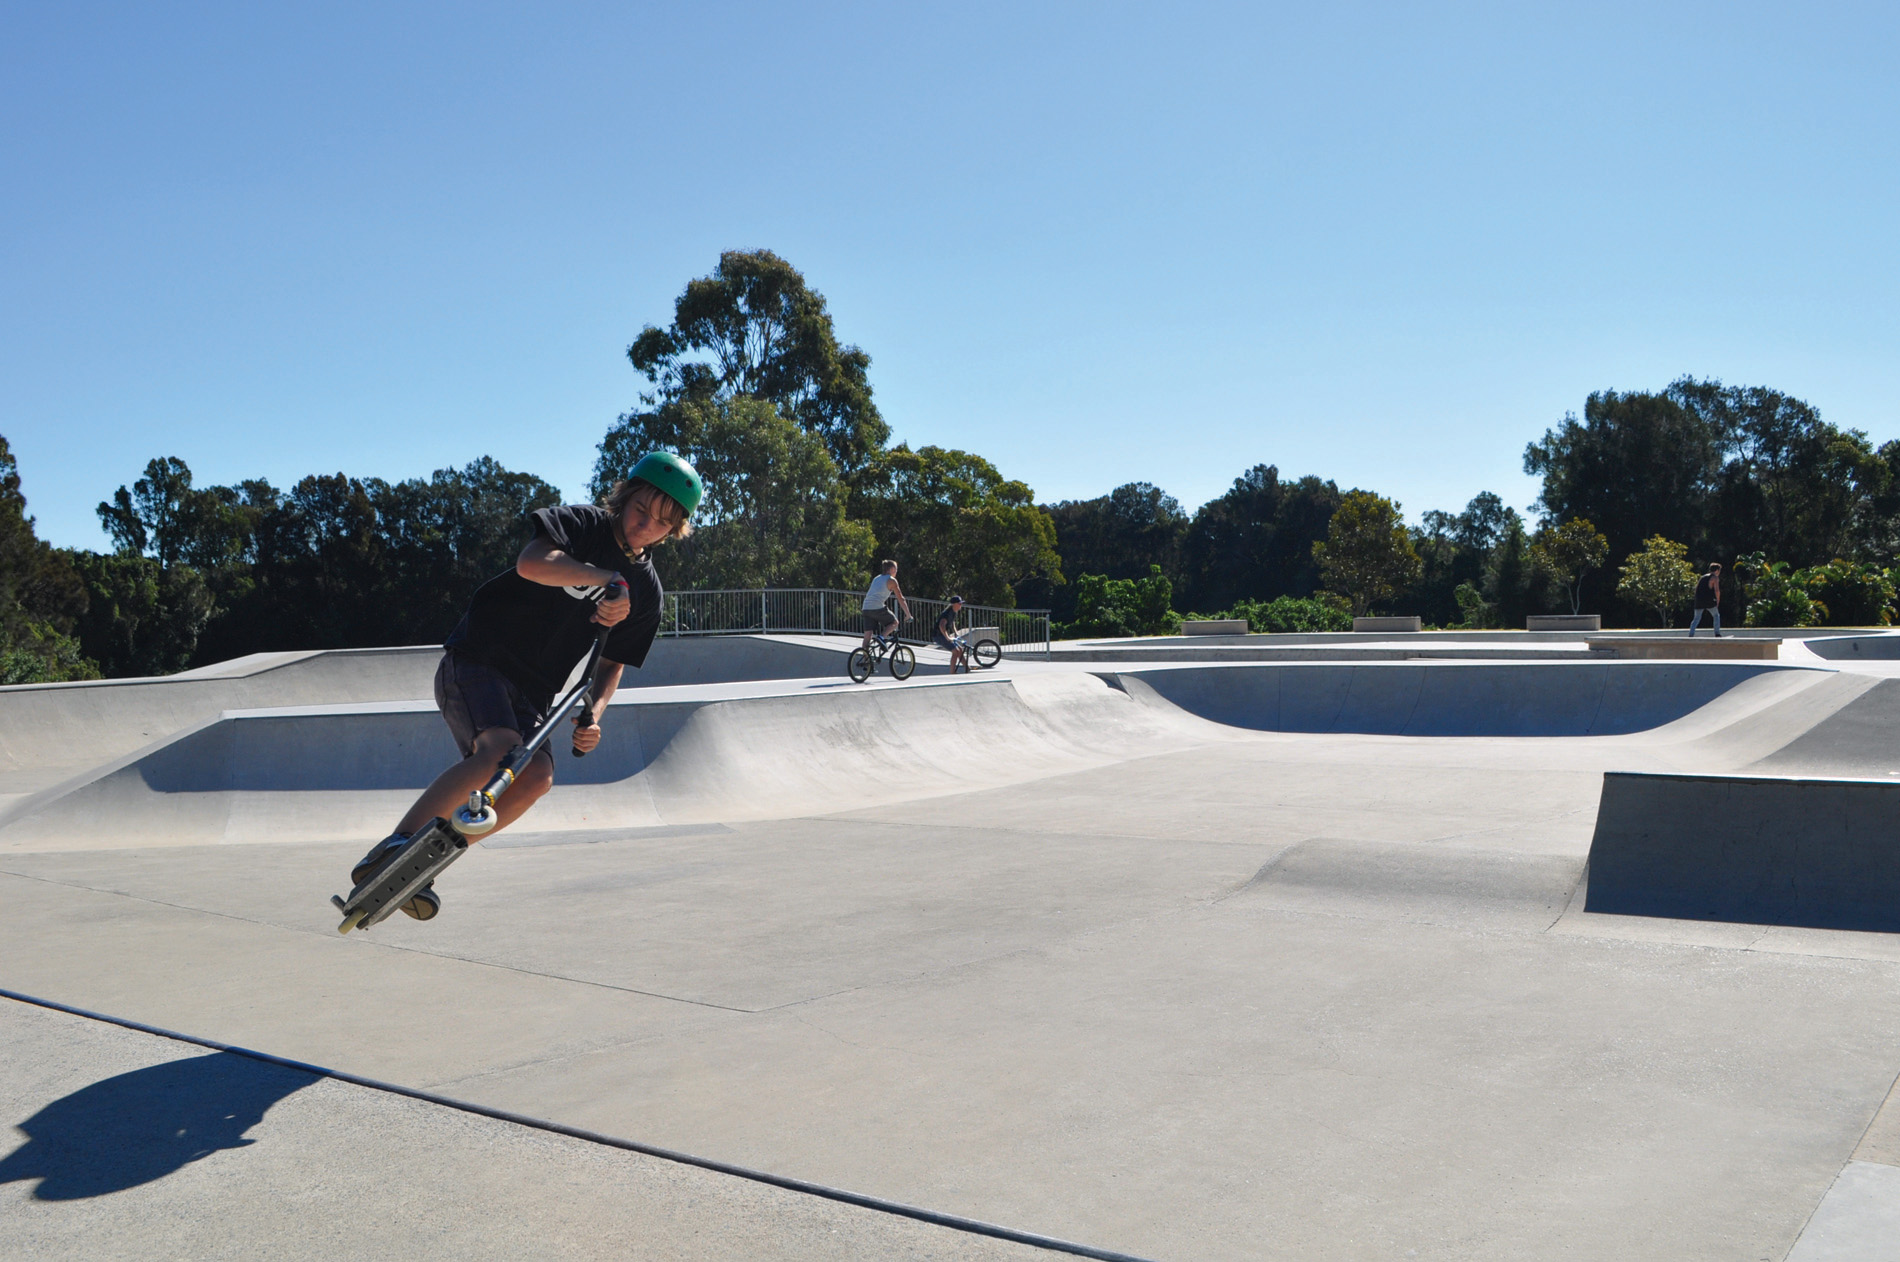 Pizzey Park Community Skate Park and Youth Precinct